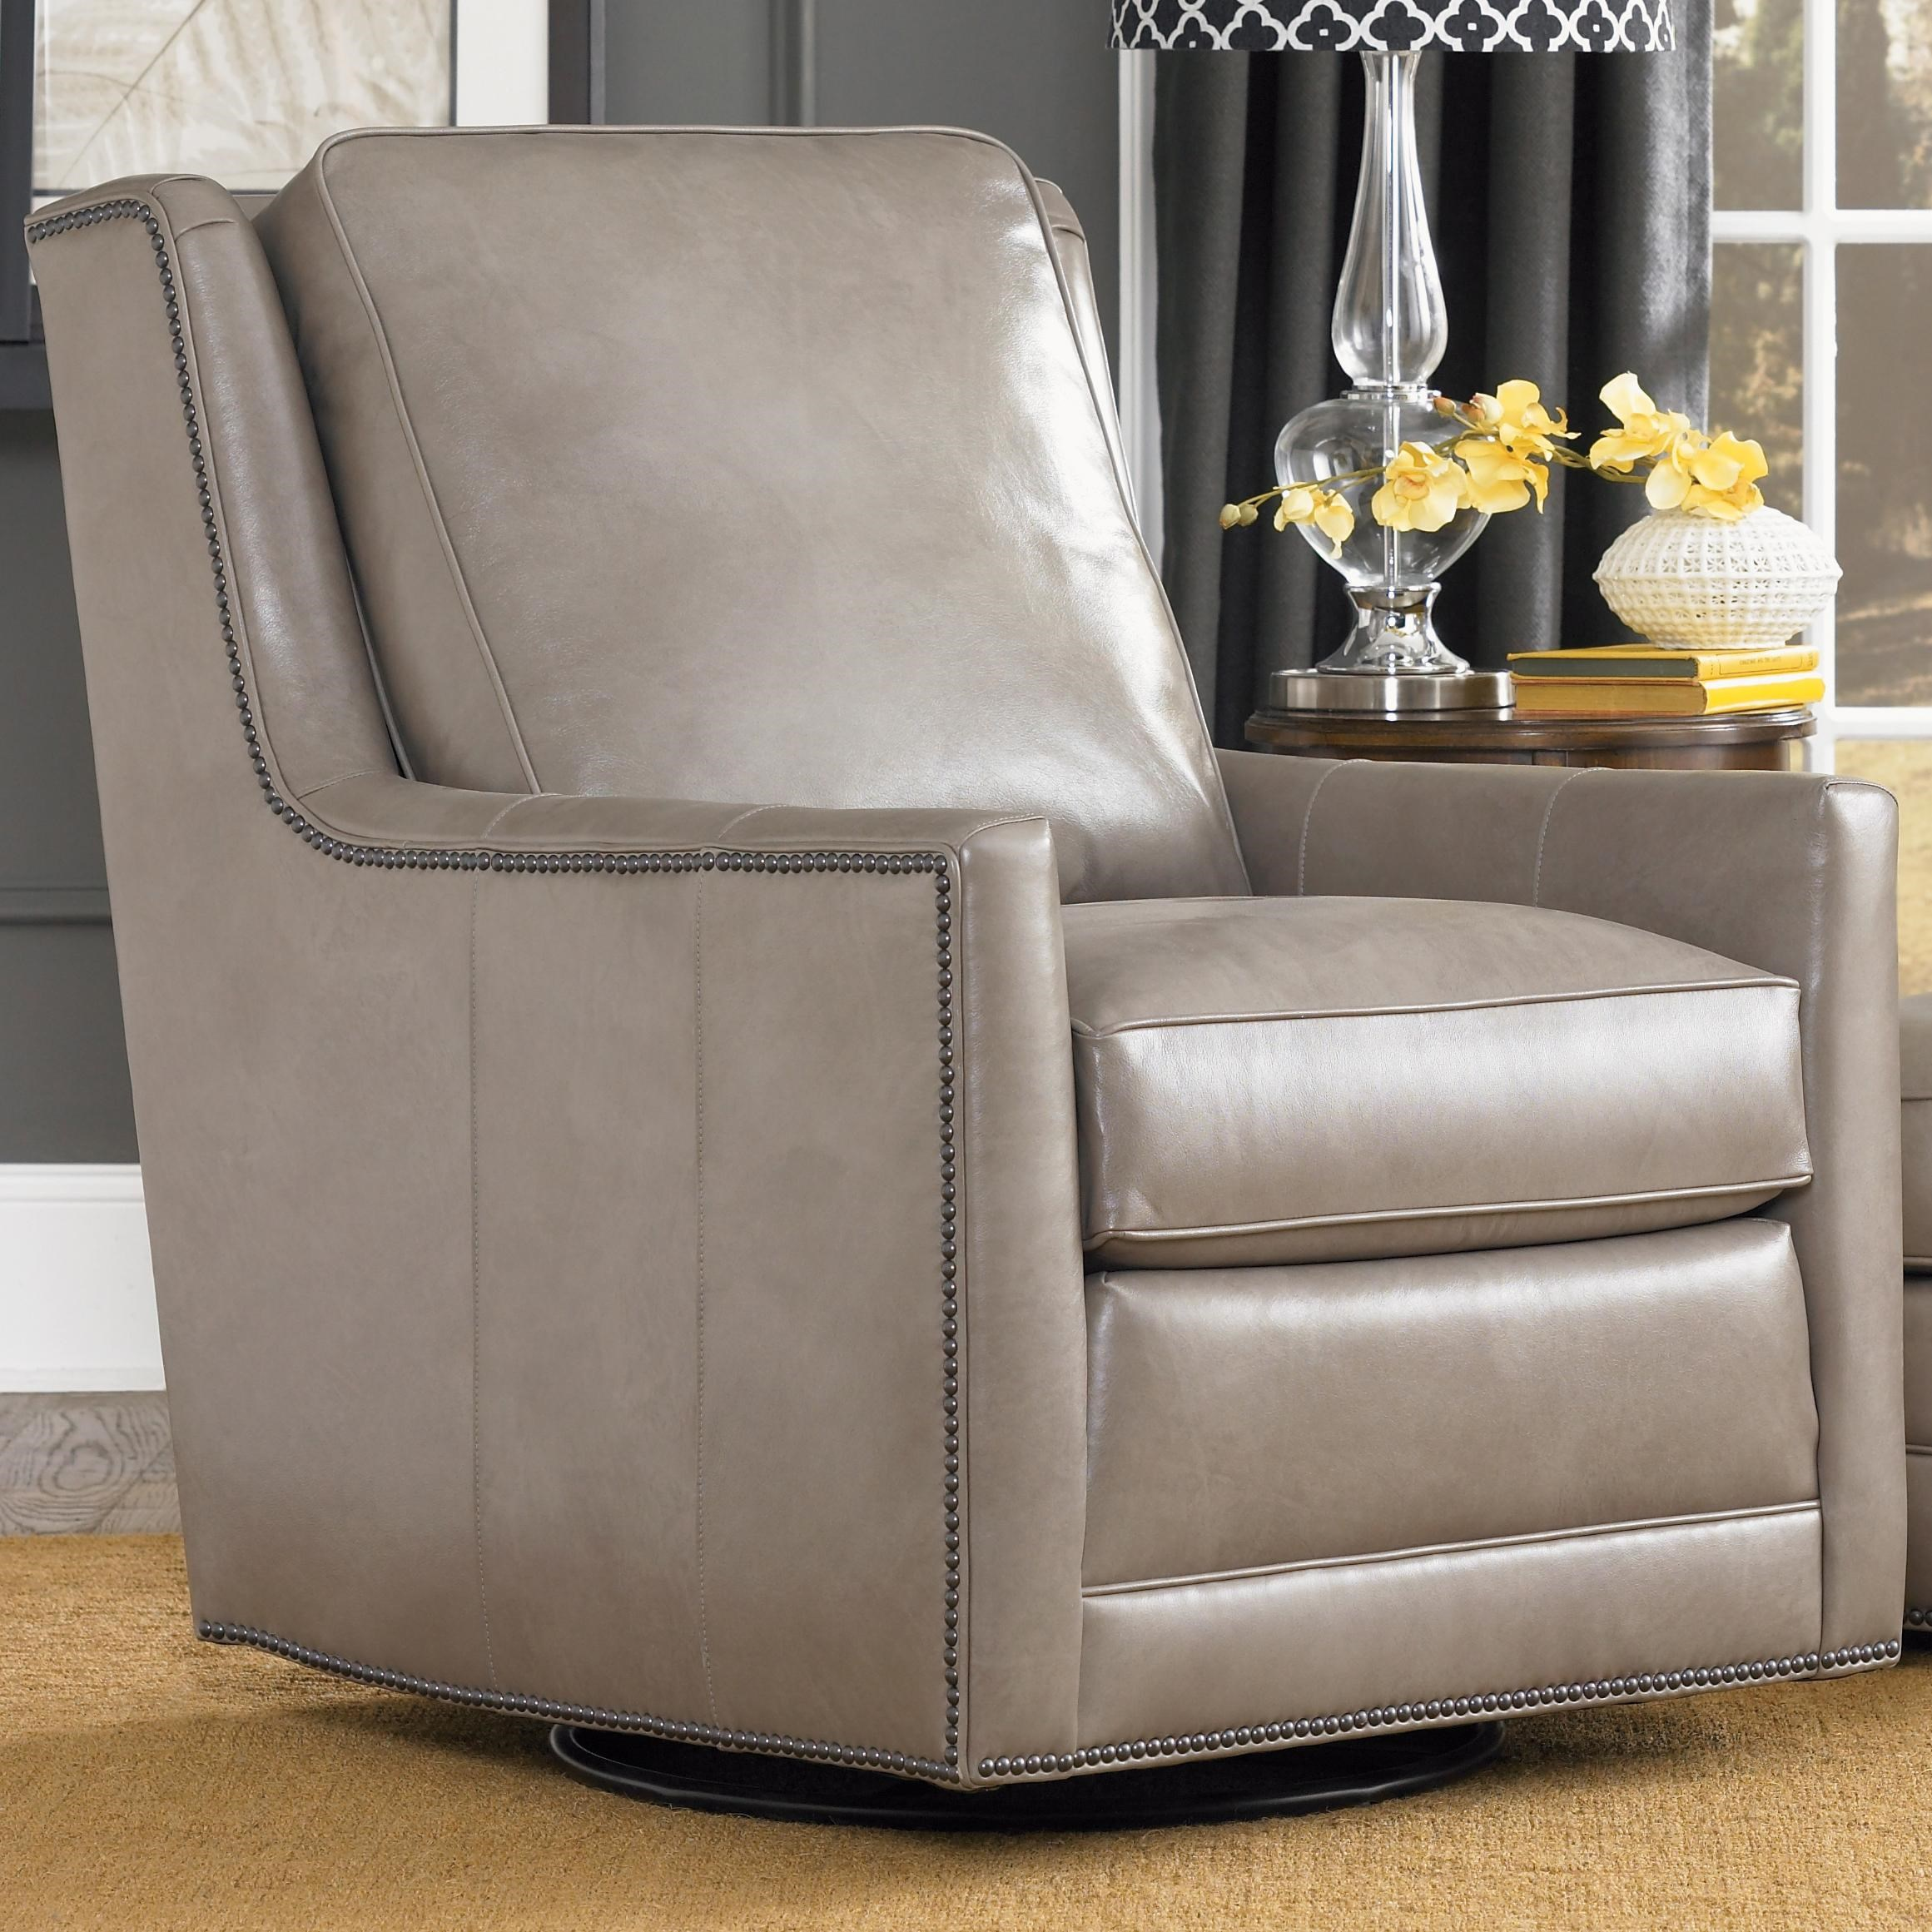 Attrayant Smith Brothers Accent Chairs And Ottomans SB Transitional Swivel Chair With  Nailhead Trim